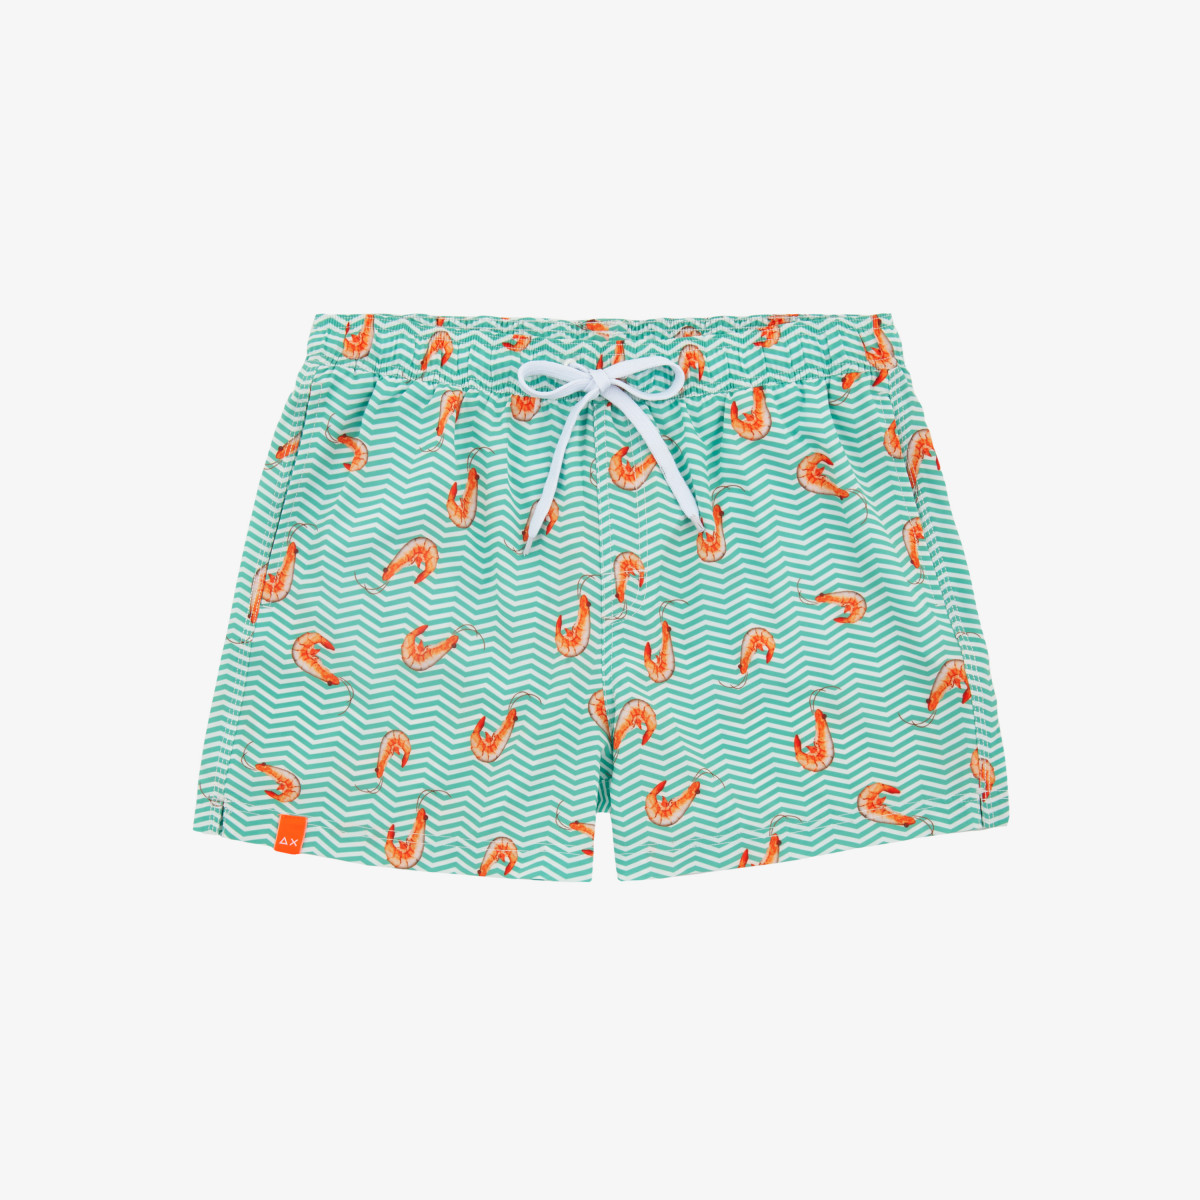 SWIM PANT SEASIDE OFF WHITE/SAGE GREEN